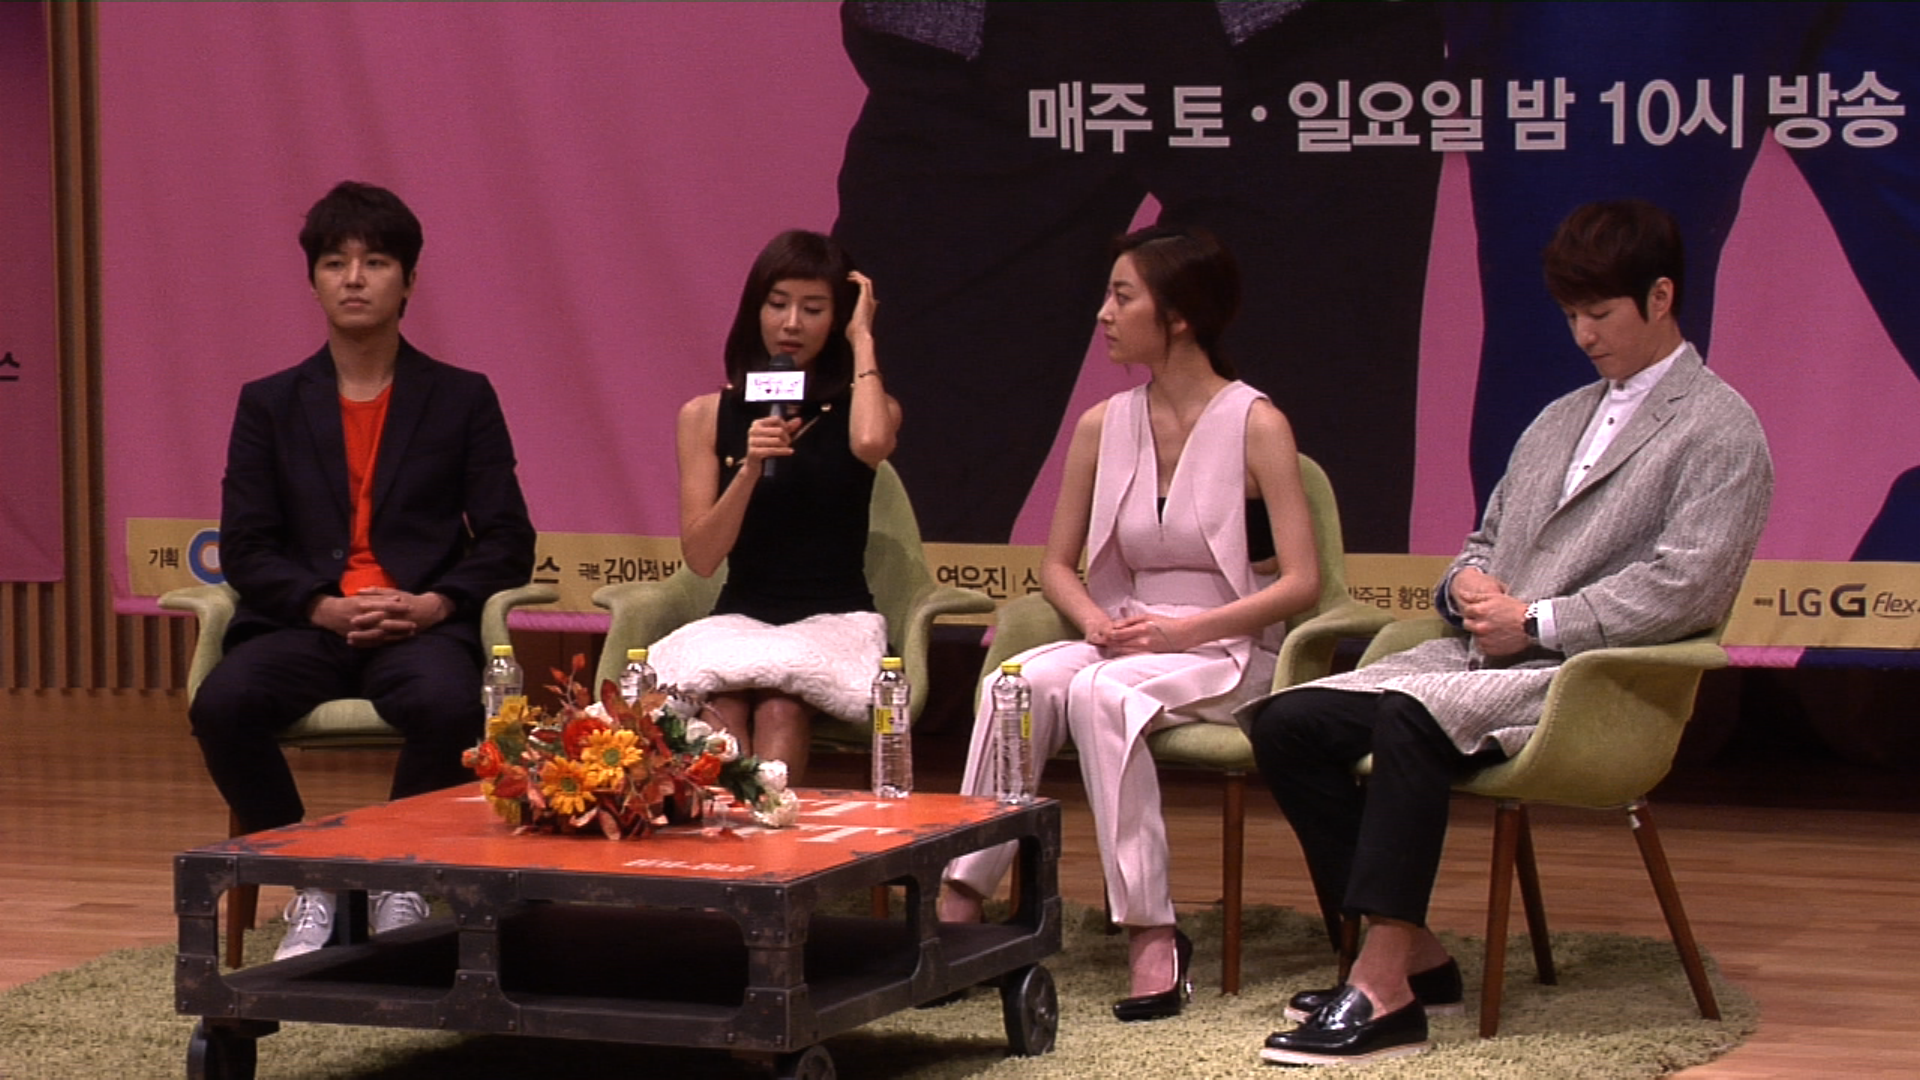 #1077 Press Conference of 'Divorce Lawyer in Love'